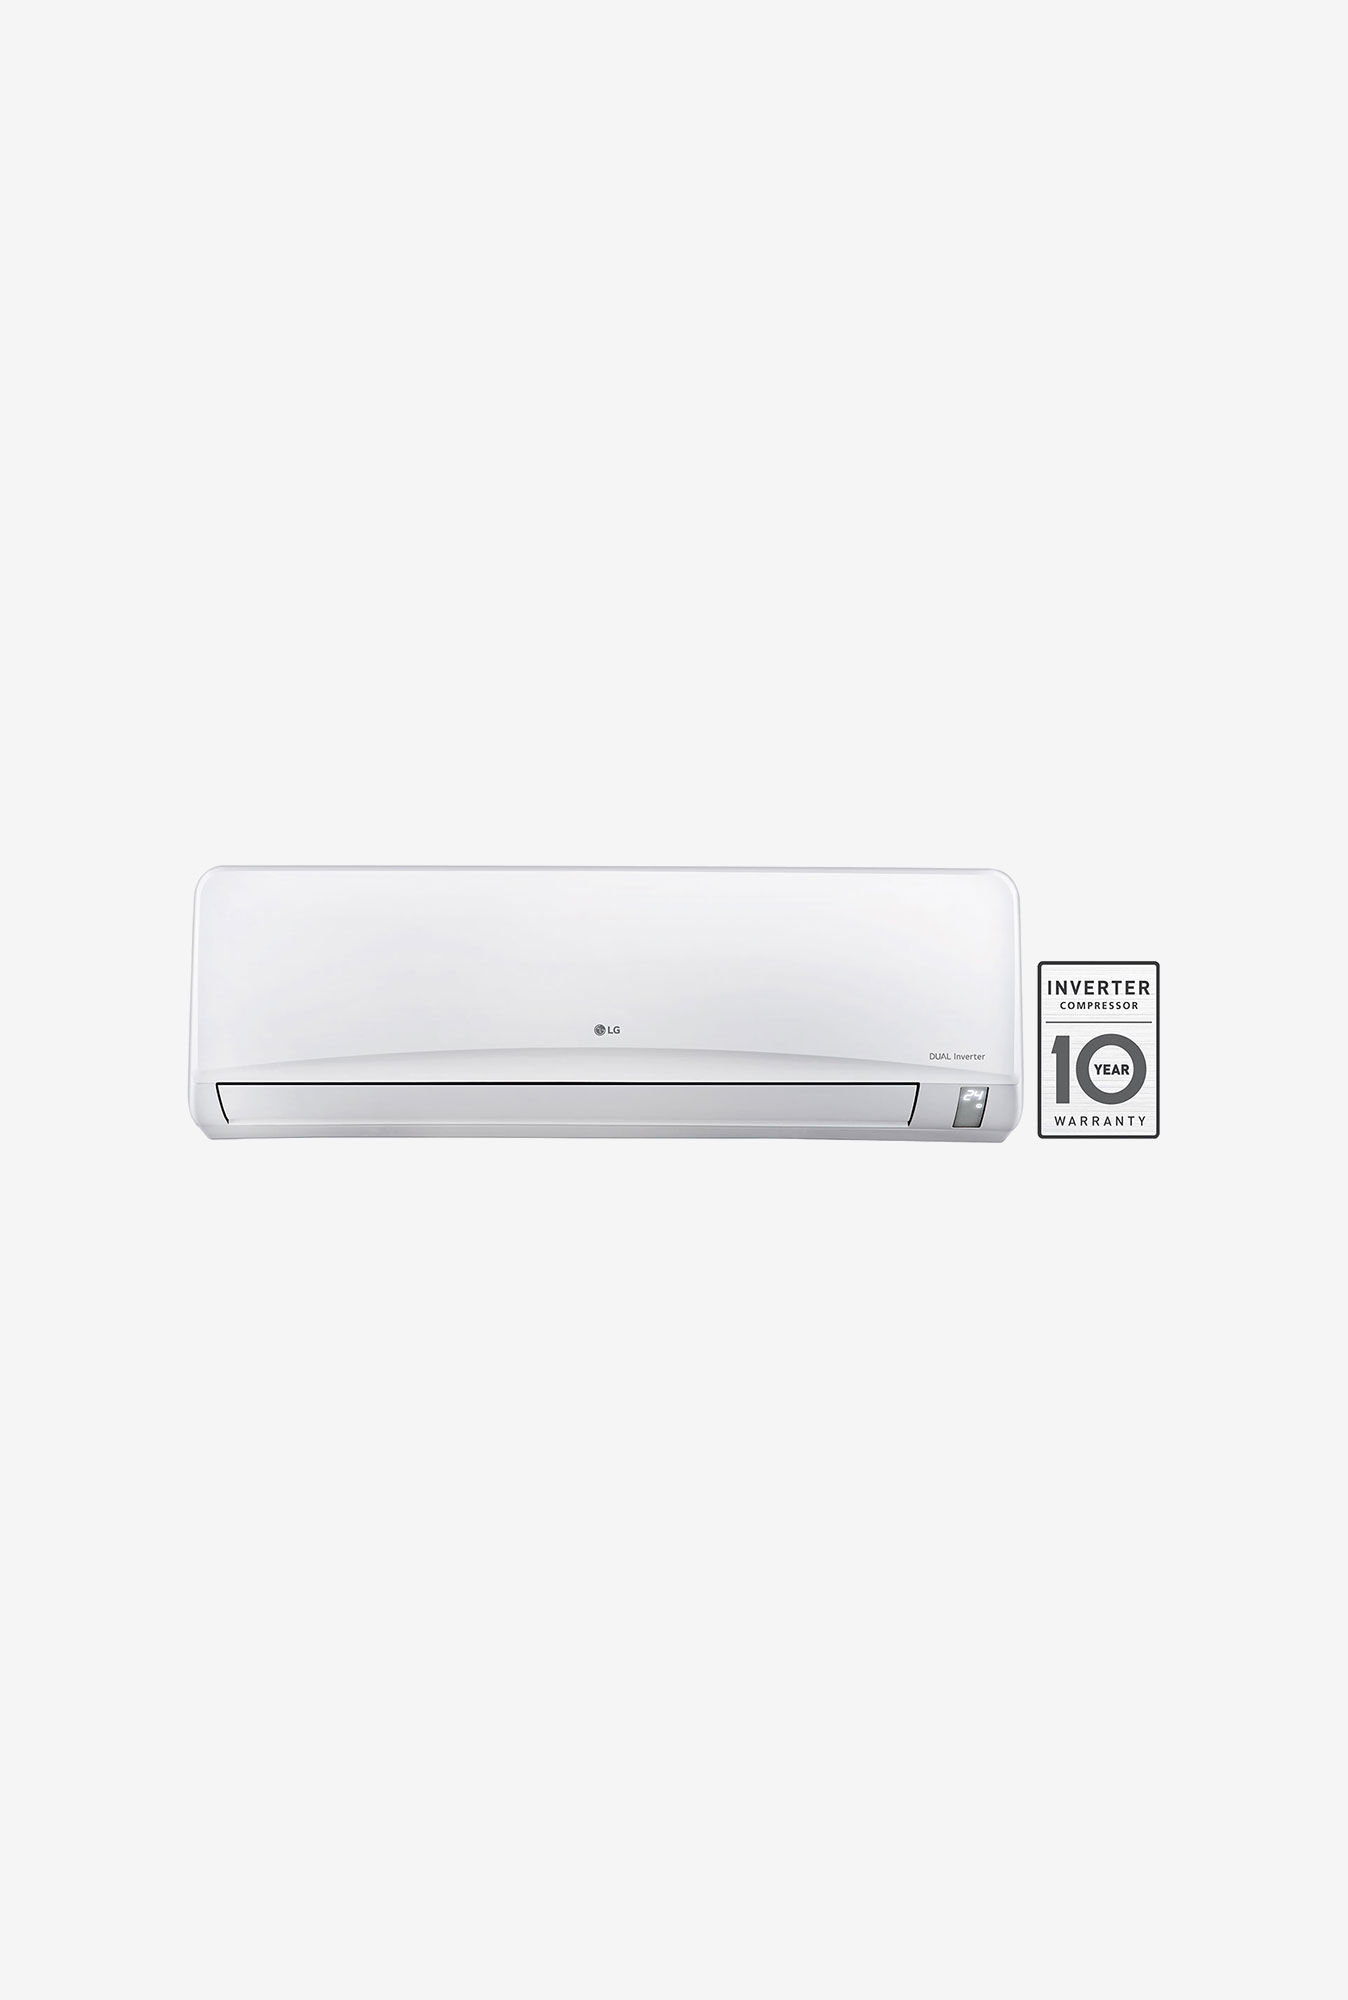 LG JS-Q18NUXA 1.5 Ton 3 Star Dual Inverter Split Air Conditioner